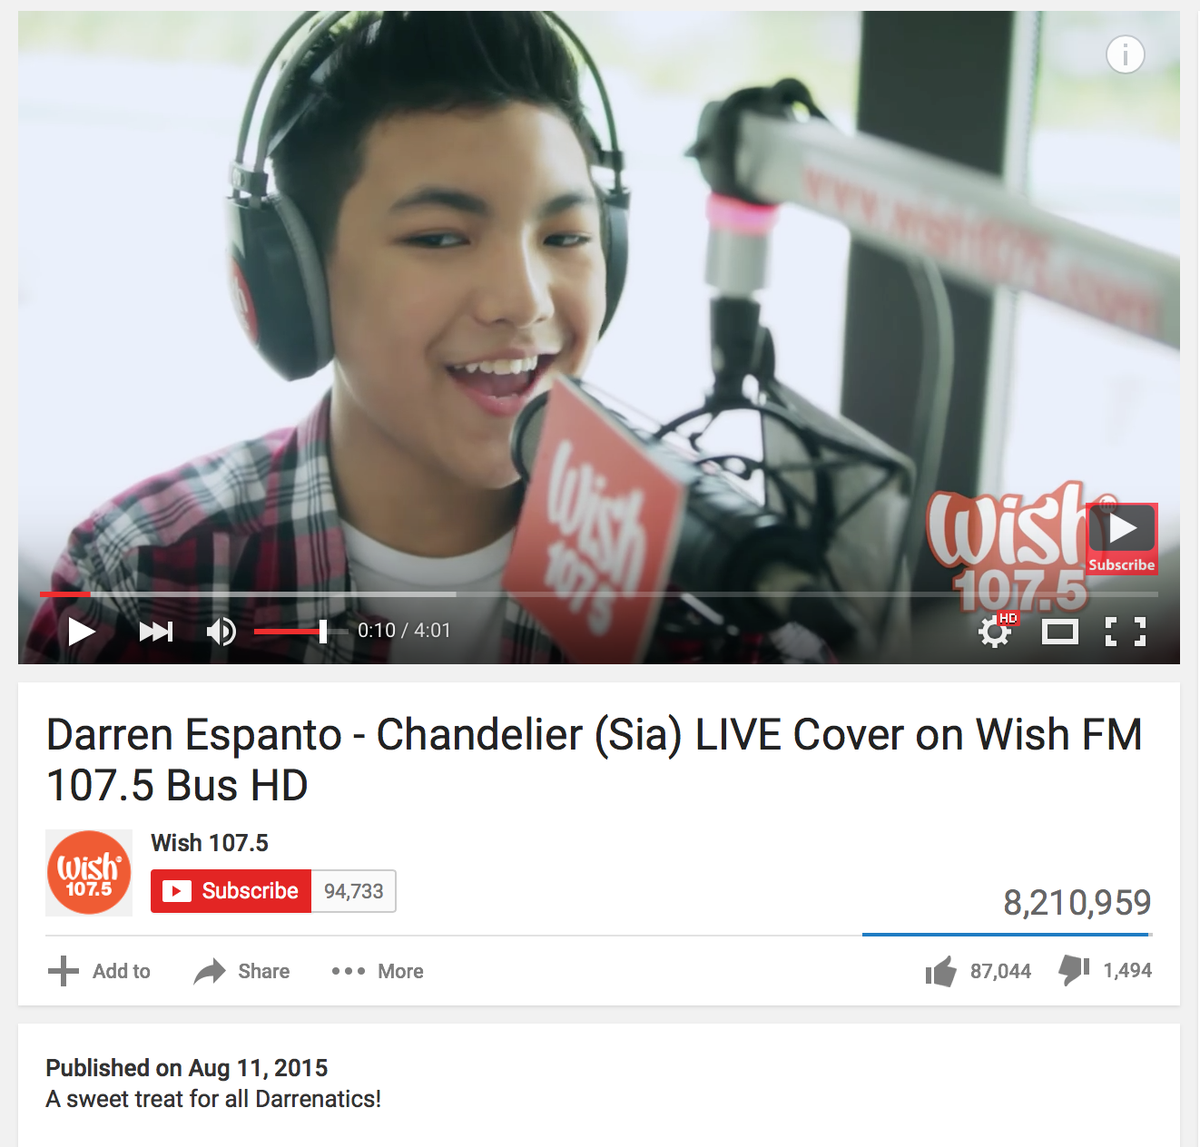 Filipino singer Darren Espanto earned superb reactions for his cover song Chandelier. #Darrenatics #DarrenEspanto https://t.co/vcDiKrgqcu